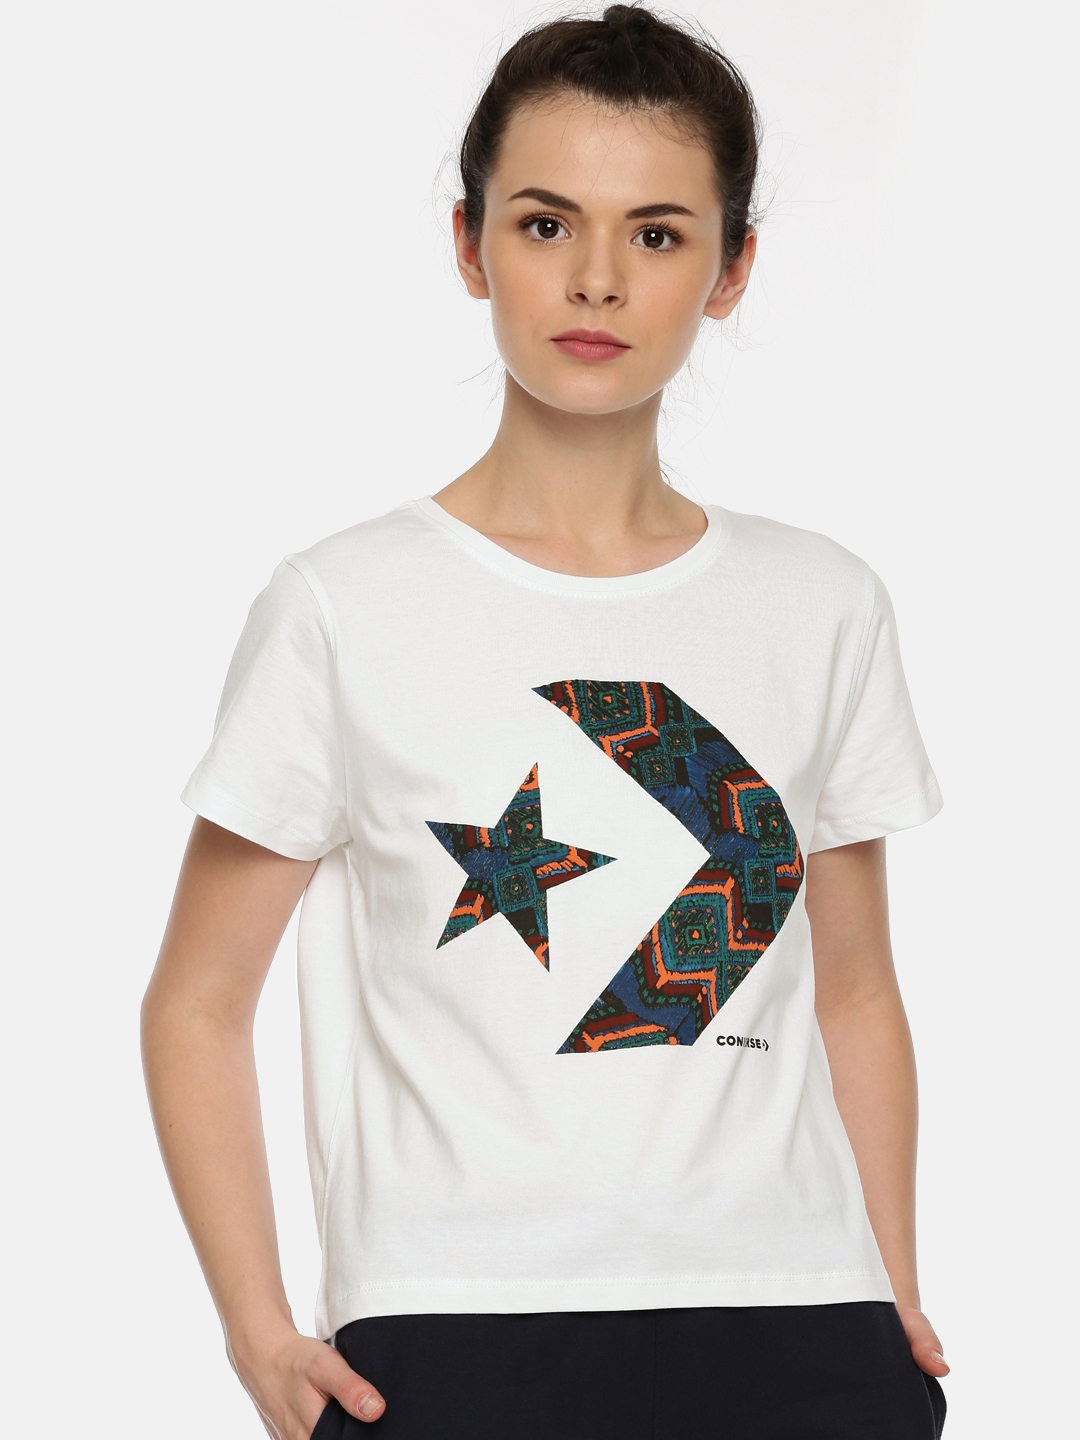 fbdc8f94a93a Buy Converse Women White Printed Round Neck T Shirt - Tshirts for ...